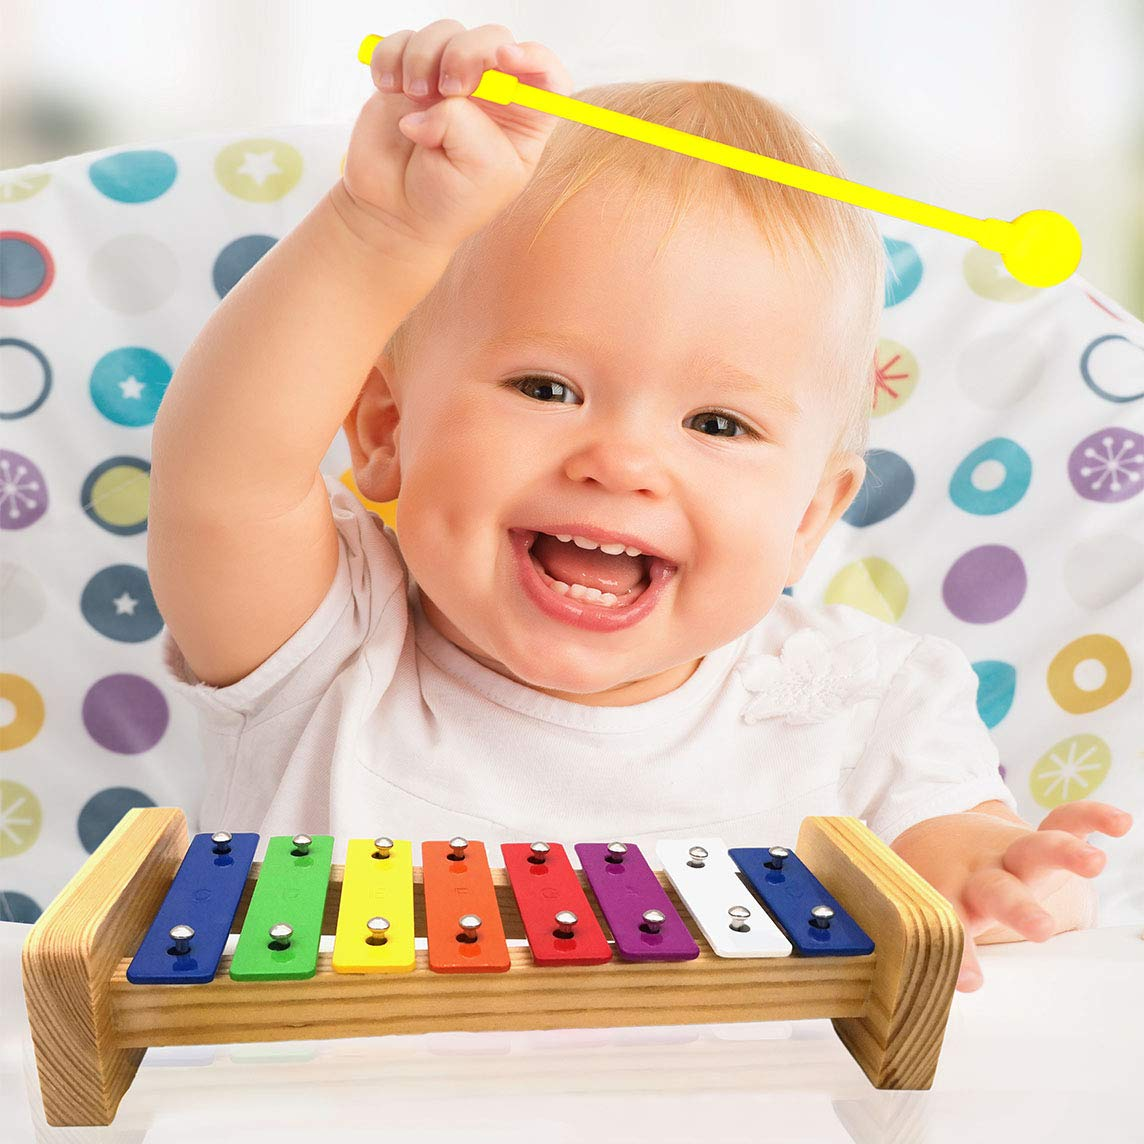 XIYITOY Xylophone for kids,The First Birthday Gift for kids 1-3 Year Old Girl,Boys,Musical Kid Toy for Kids for 4-8 Year Old Boys Gift,Whith Two Child-Safe Mallets for 2-6 Year Old for Making Fun Musi by XIYITOY (Image #3)